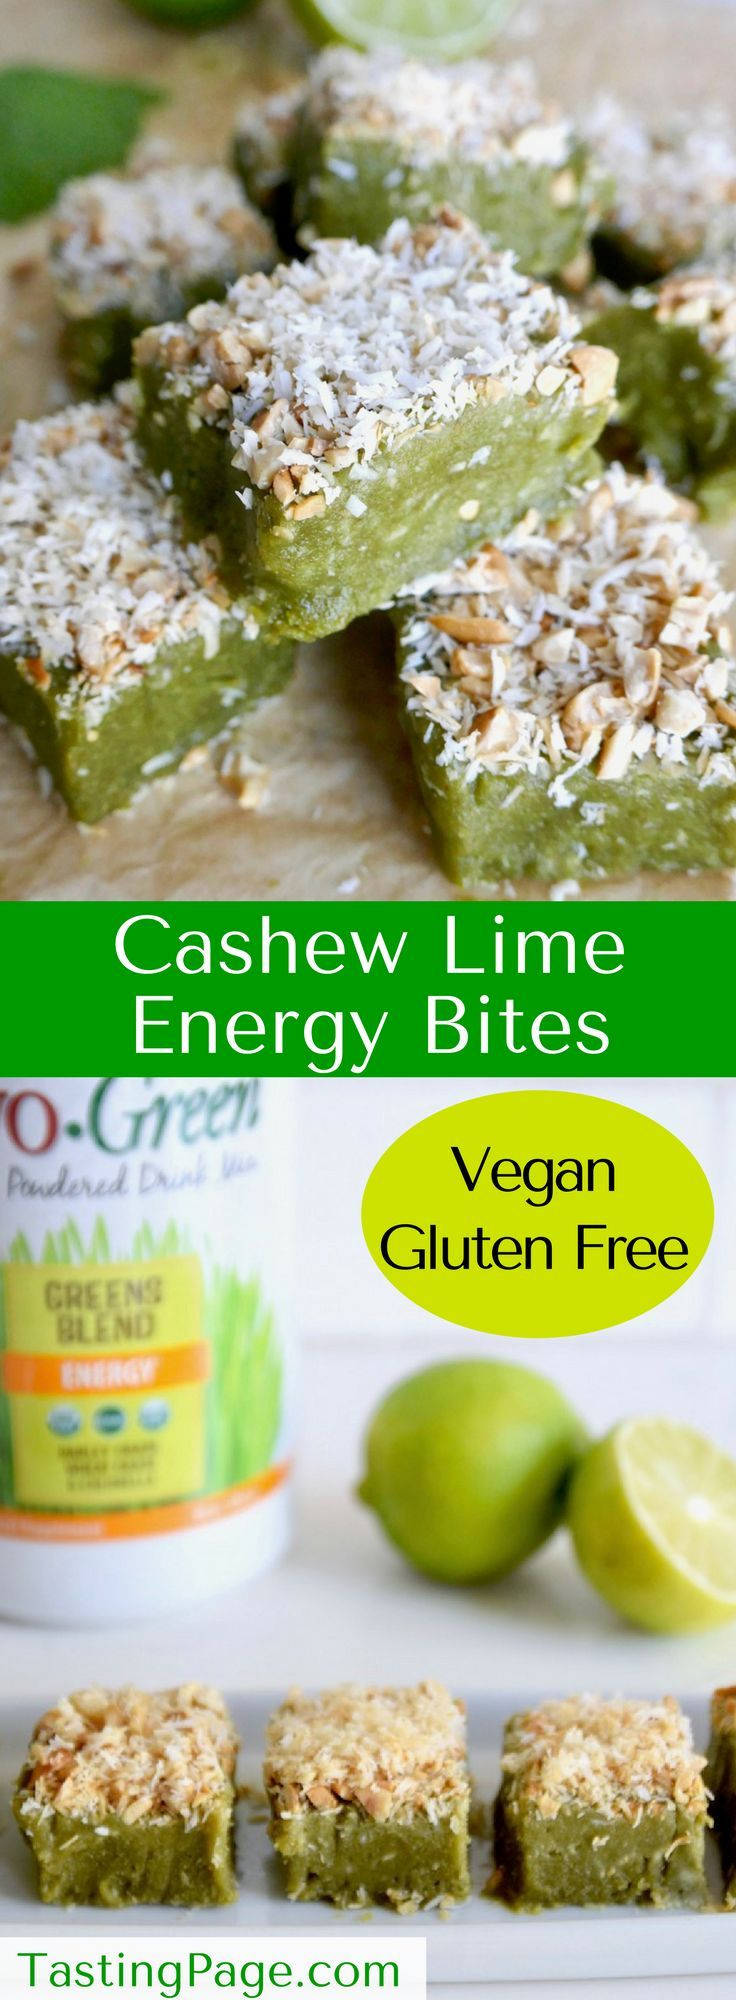 No bake cashew lime green energy bites - gluten free, dairy free, vegan and free from refined sugar | AD TastingPage.com #energybars #veganrecipes #veganfood #glutenfree #healthysnacks